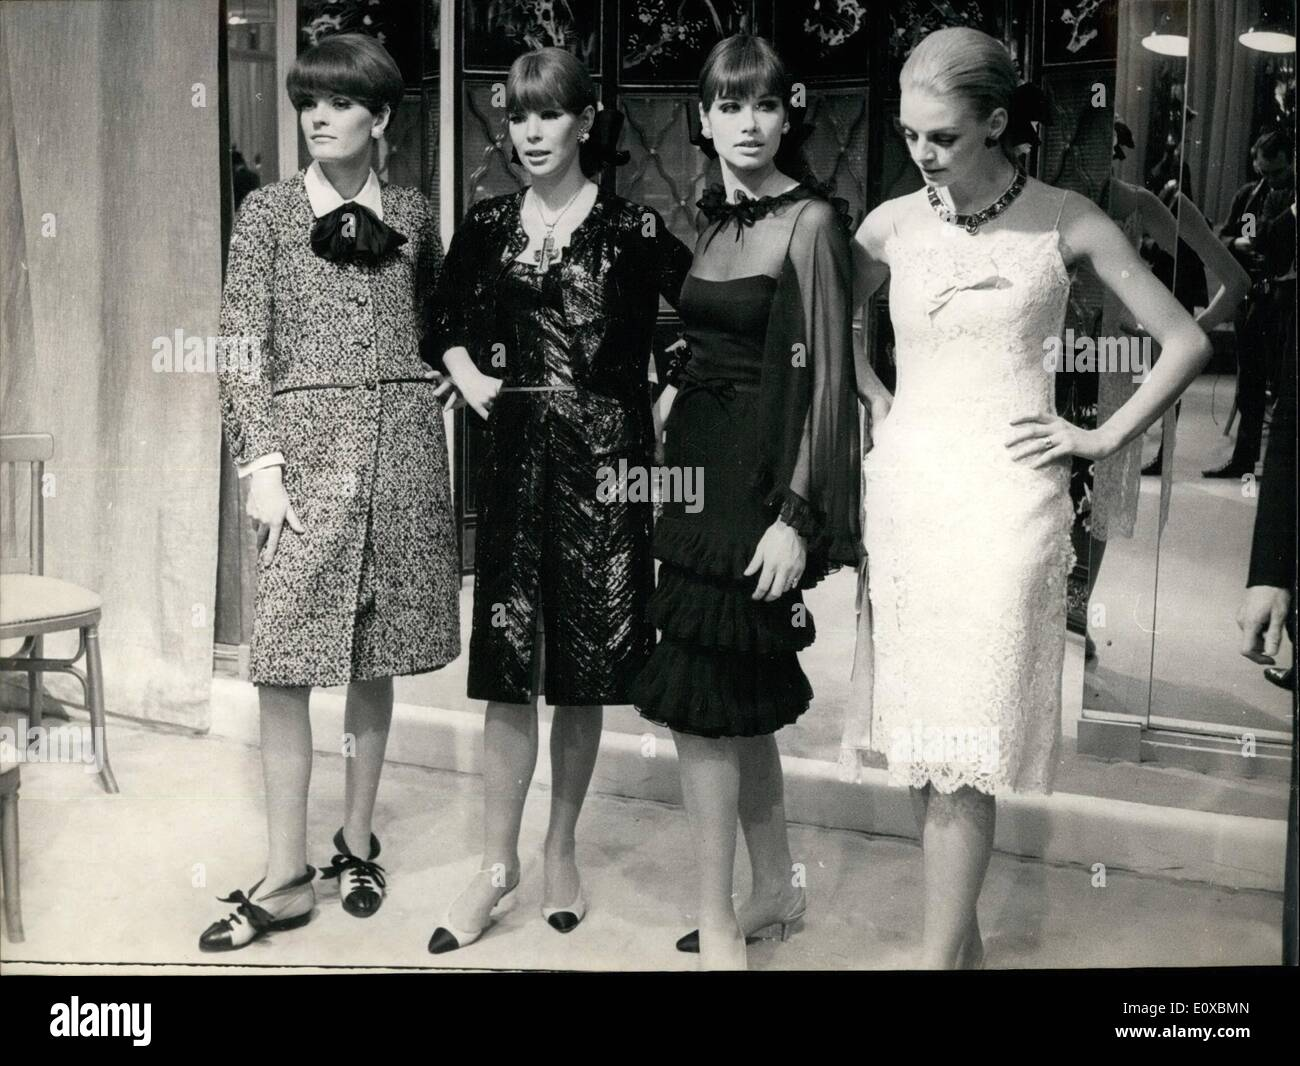 Feb 02 1966 Fashion Show At Coco Chanel 39 S Photo Shows Stock Photo Royalty Free Image